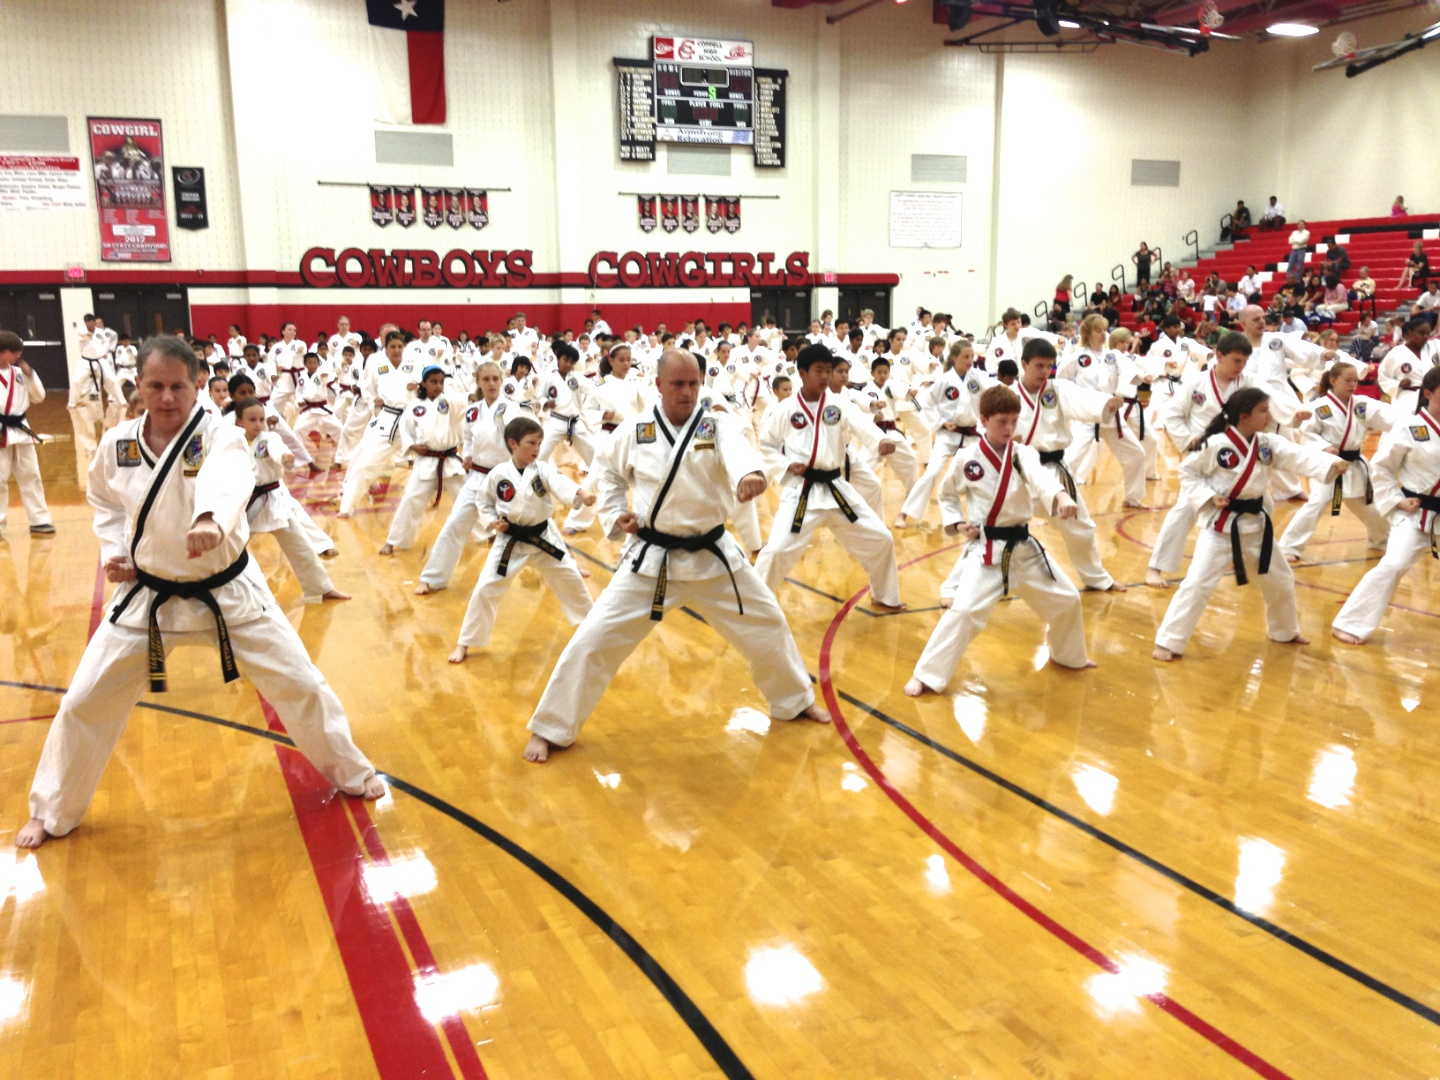 Students warming up at a karate Belt Test.